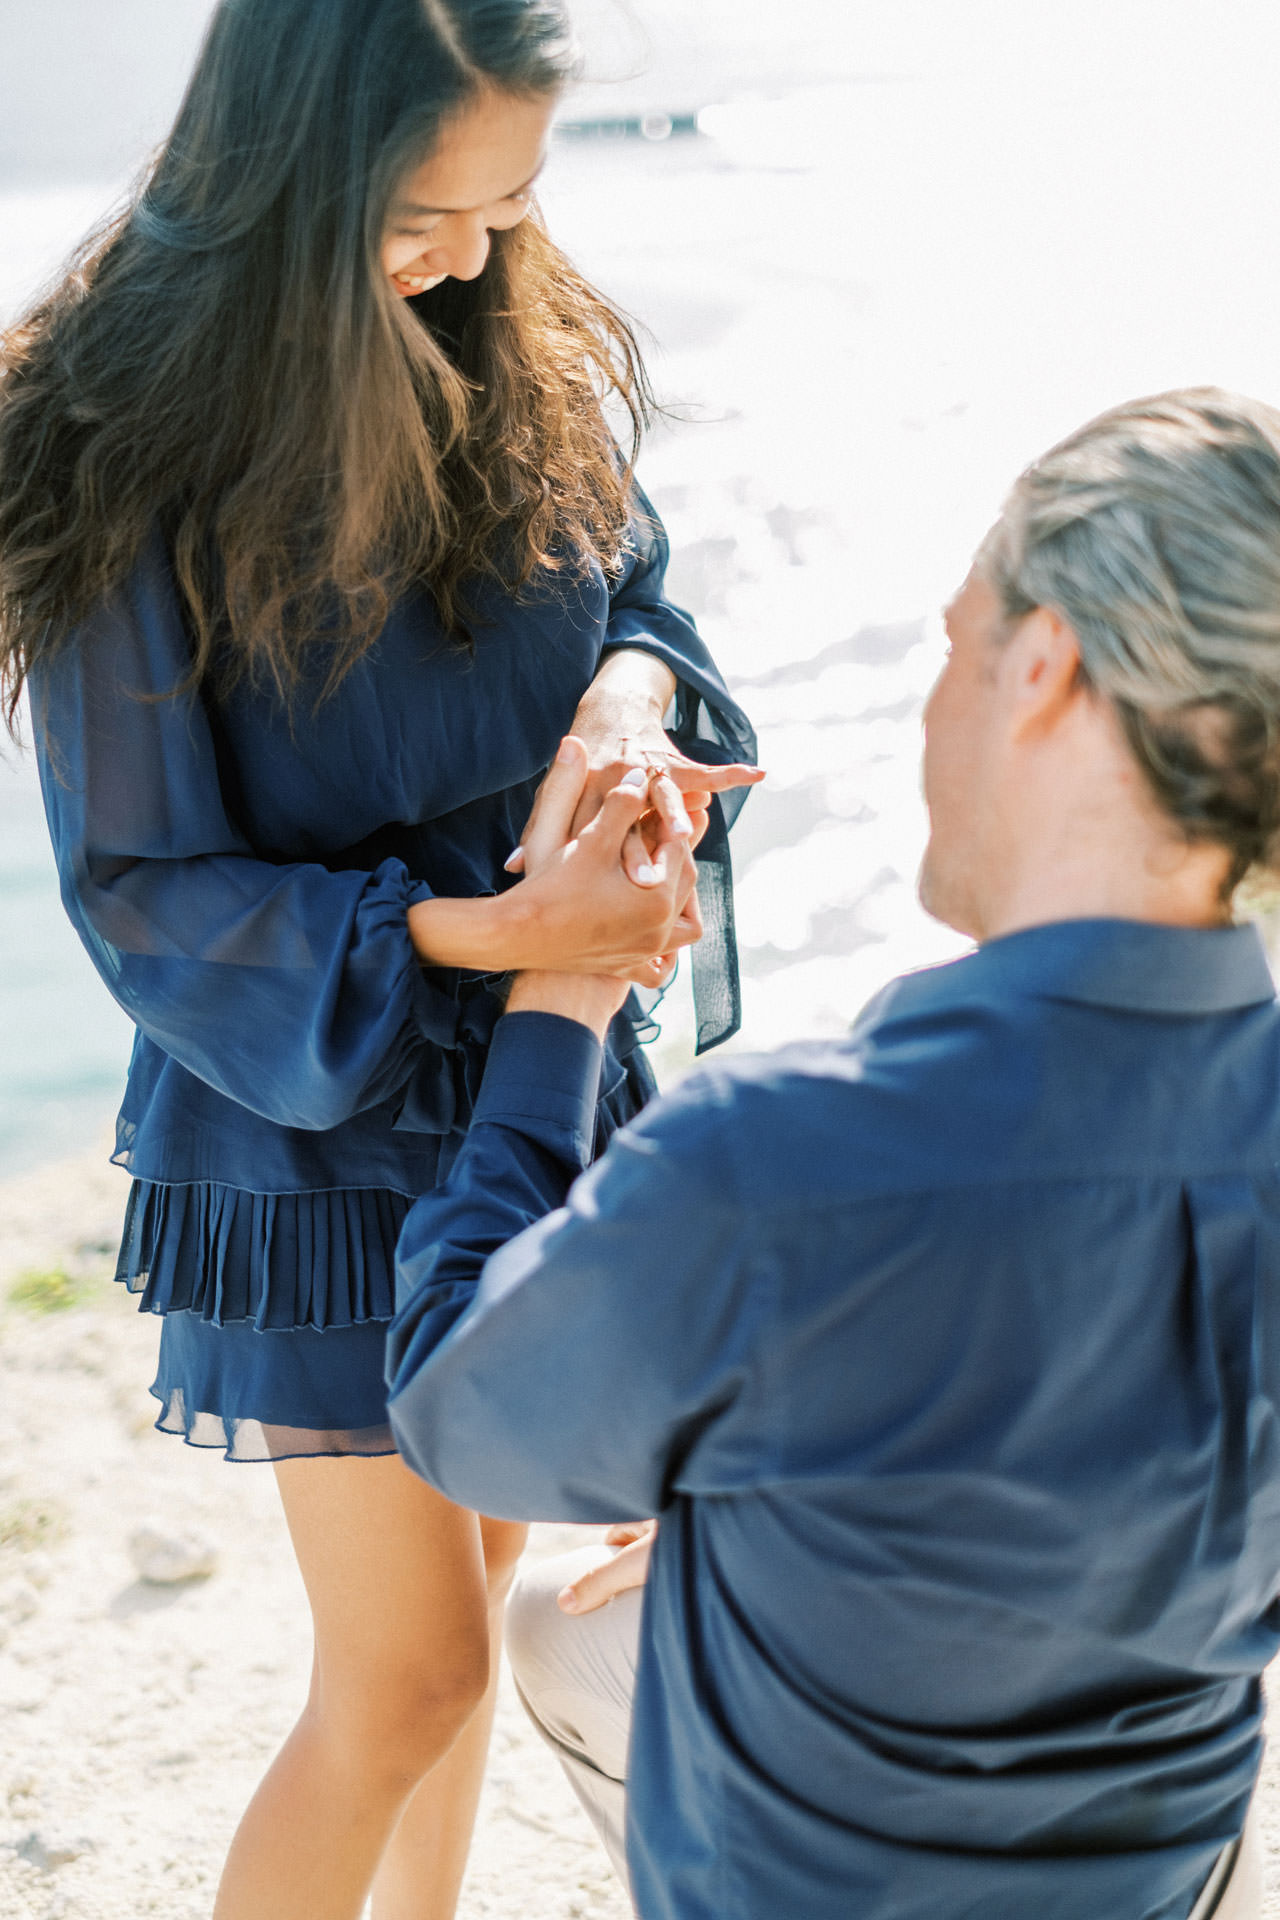 Bali's Beach Marriage Proposal with a Proposal Video! 8